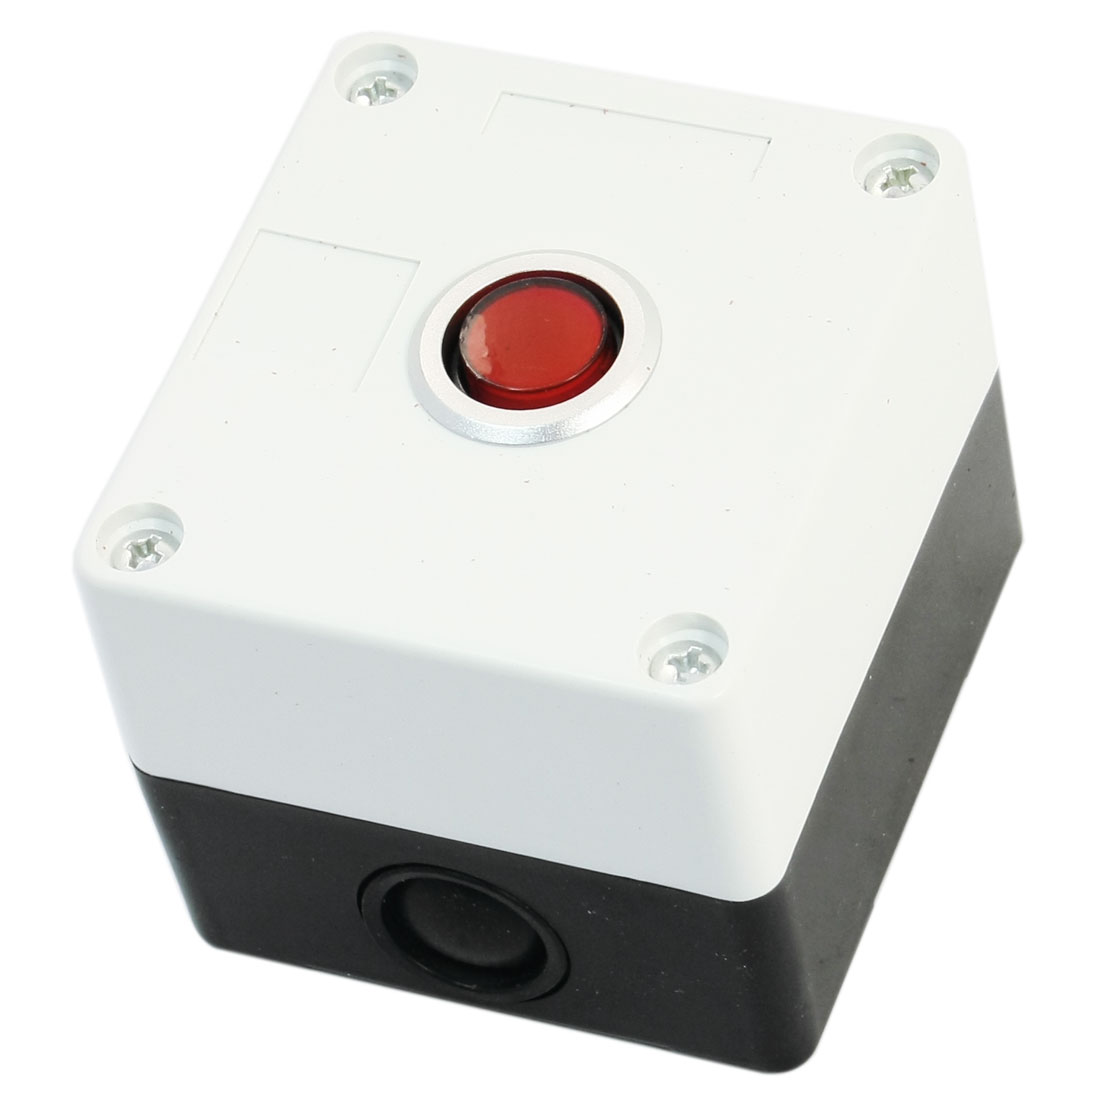 AC 220V 5A Red Pilot Lamp SPDT 5-Pin 1NO 1NC Momentary Rectangle Plastic Push Button Control Station Box AC220V 5A